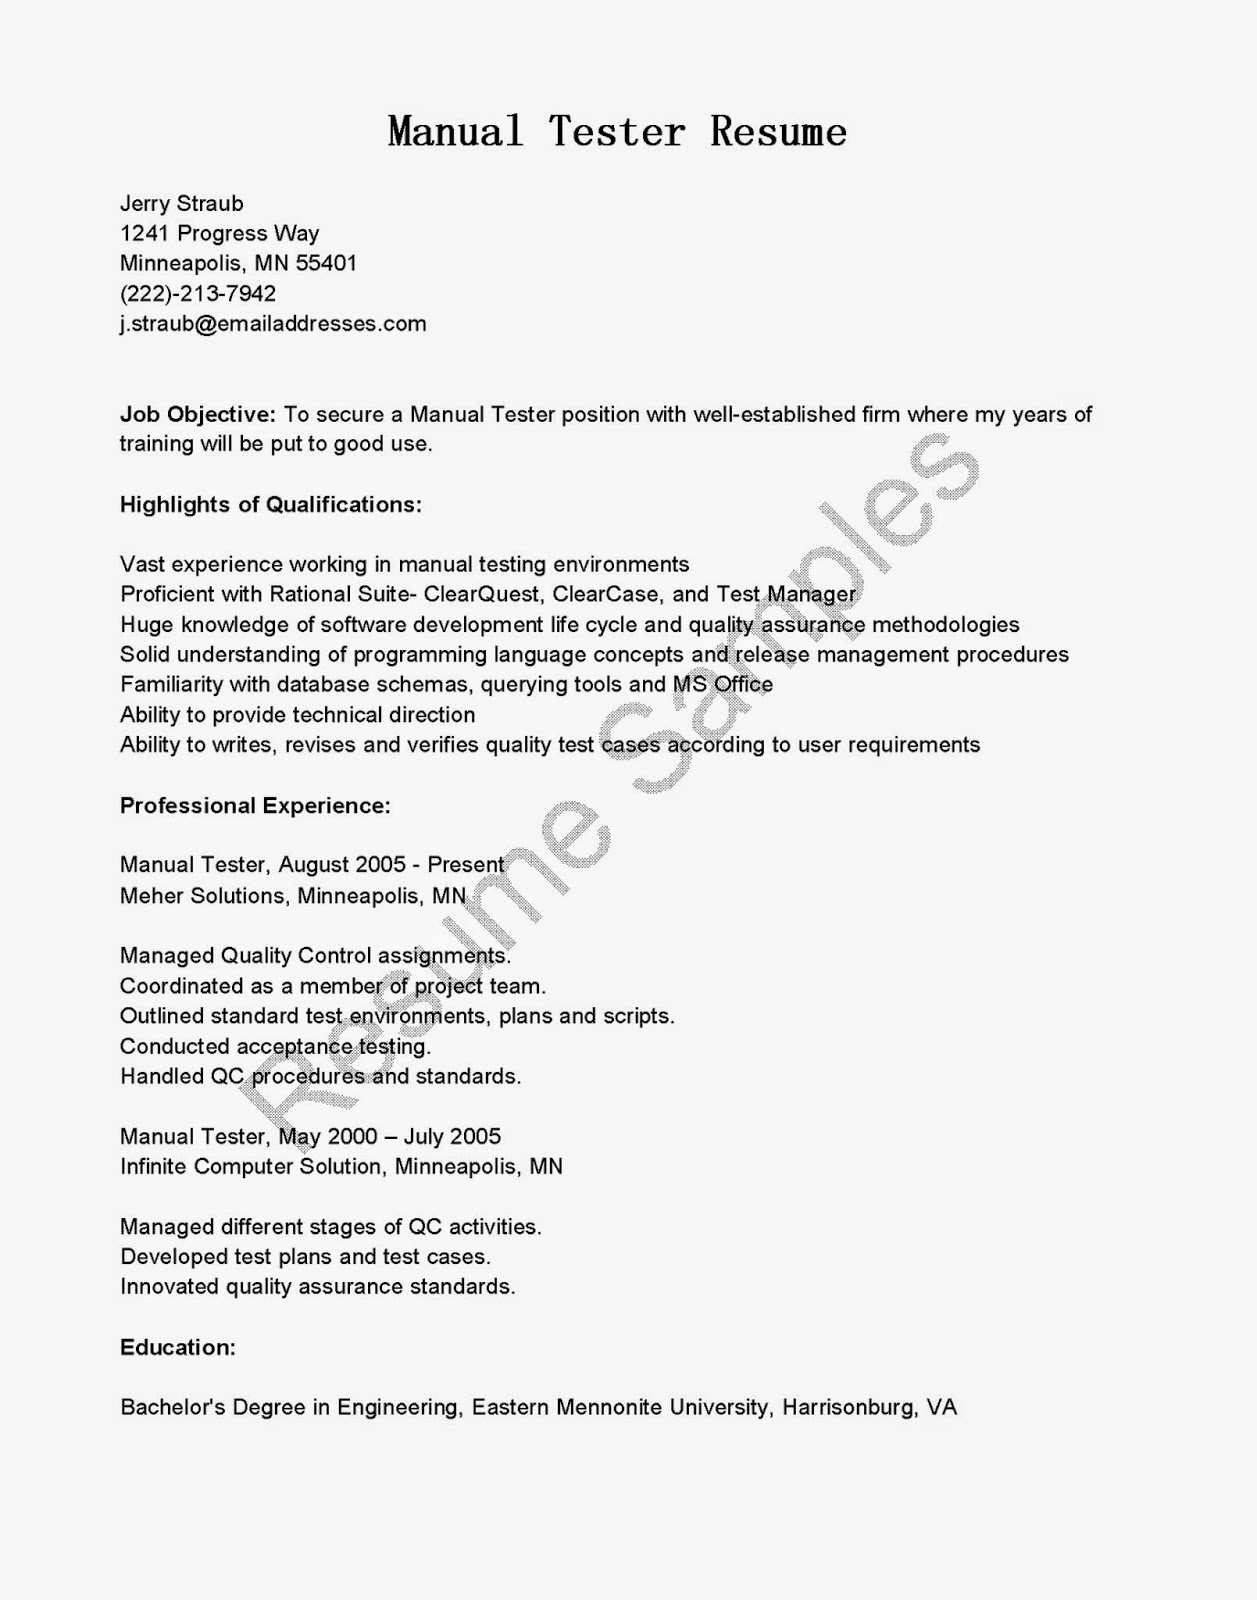 Resume Samples Manual Tester Resume Sample